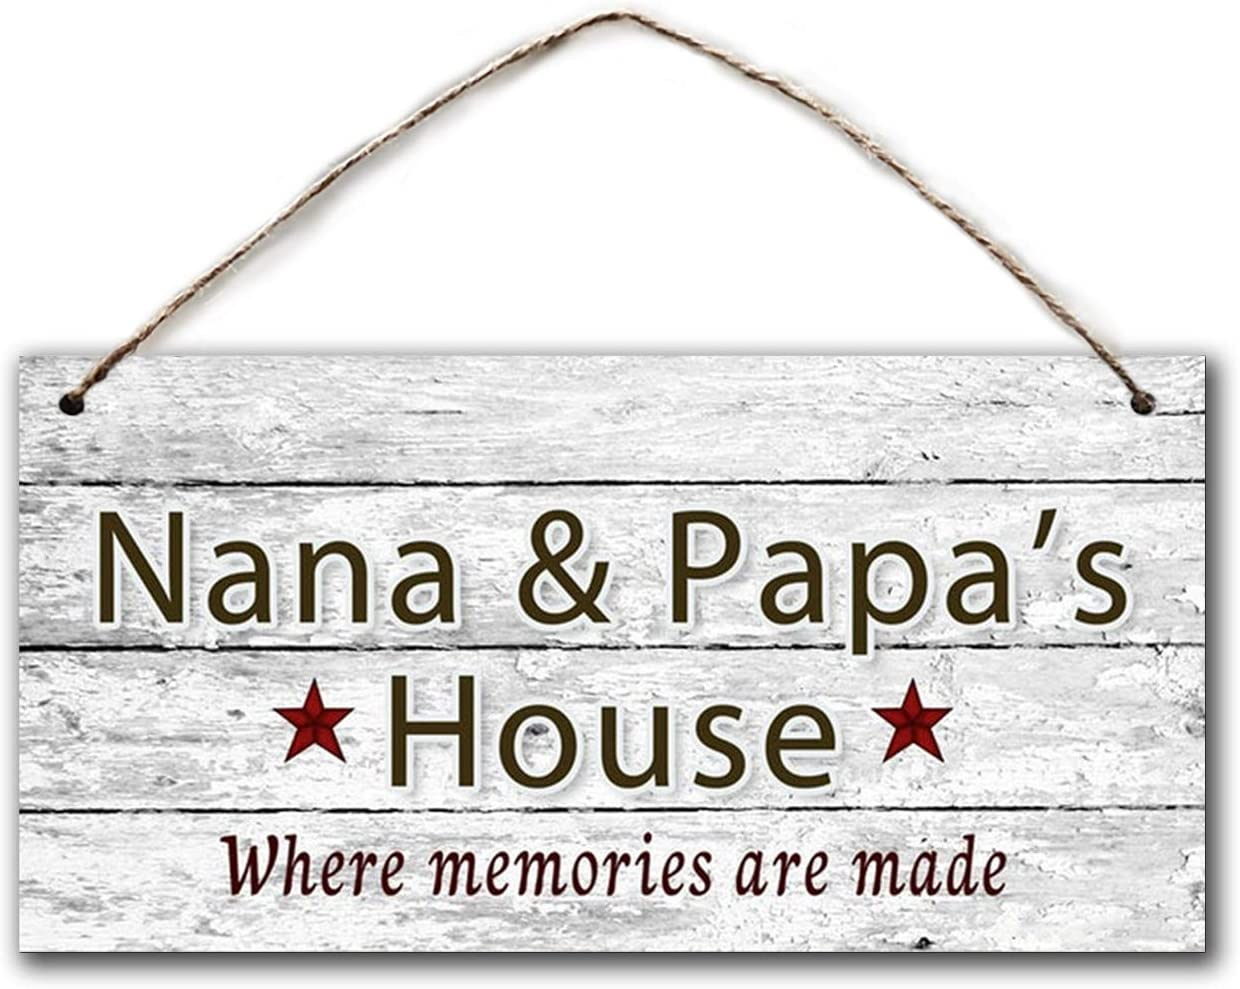 BESTWD Nana & Papa's House Sign, Where Memories are Made, Distressed Wall Art, Gift for Grandparents, 5